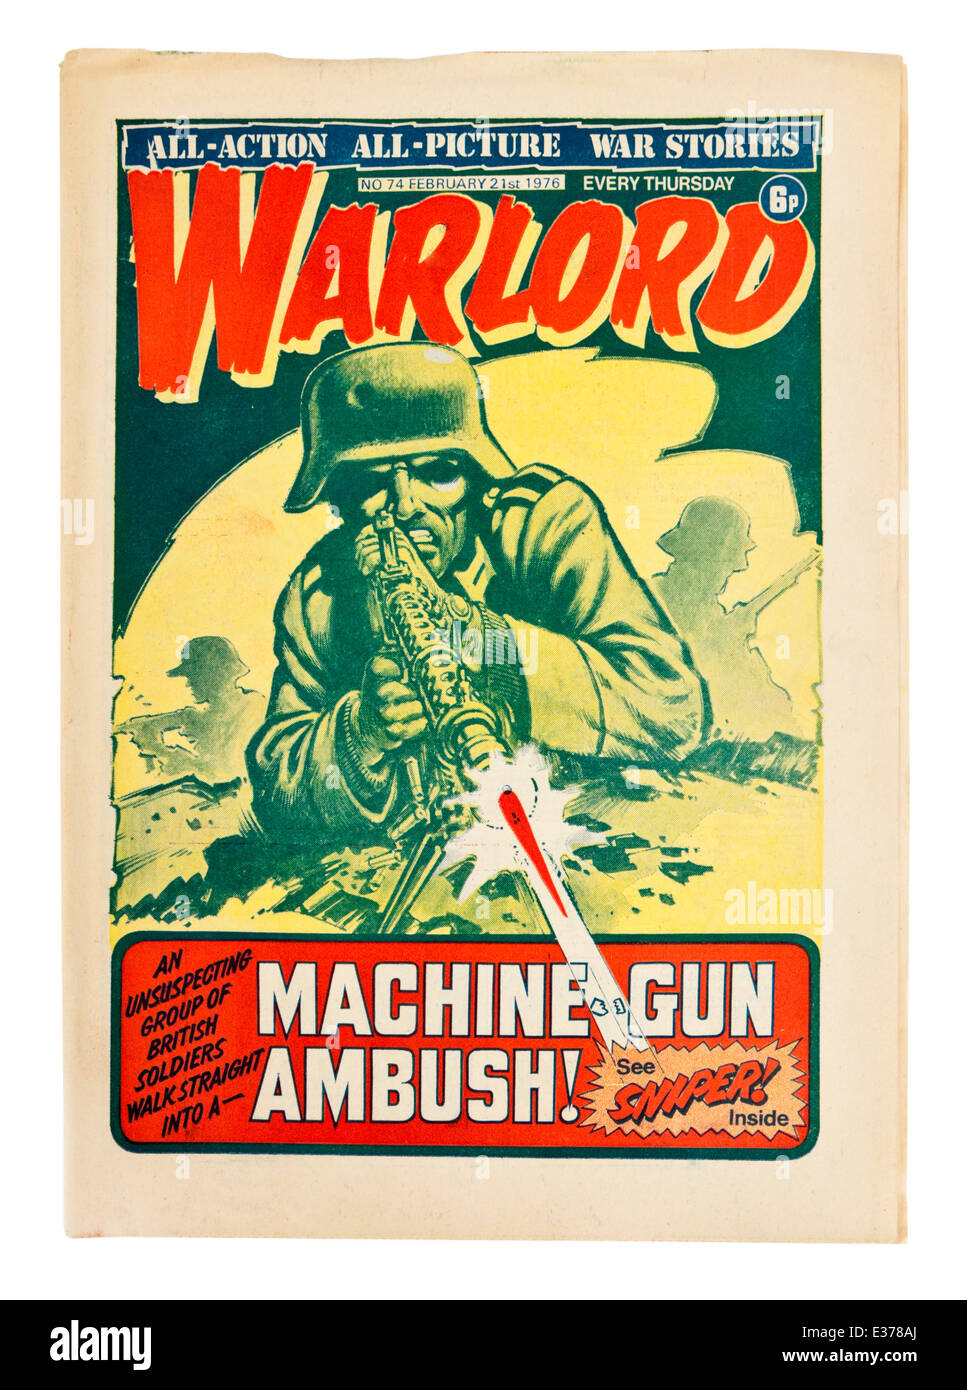 21st February 1976 copy of 'Warlord' (No 74), the popular British weekly war comic for boys from the 1970's. - Stock Image